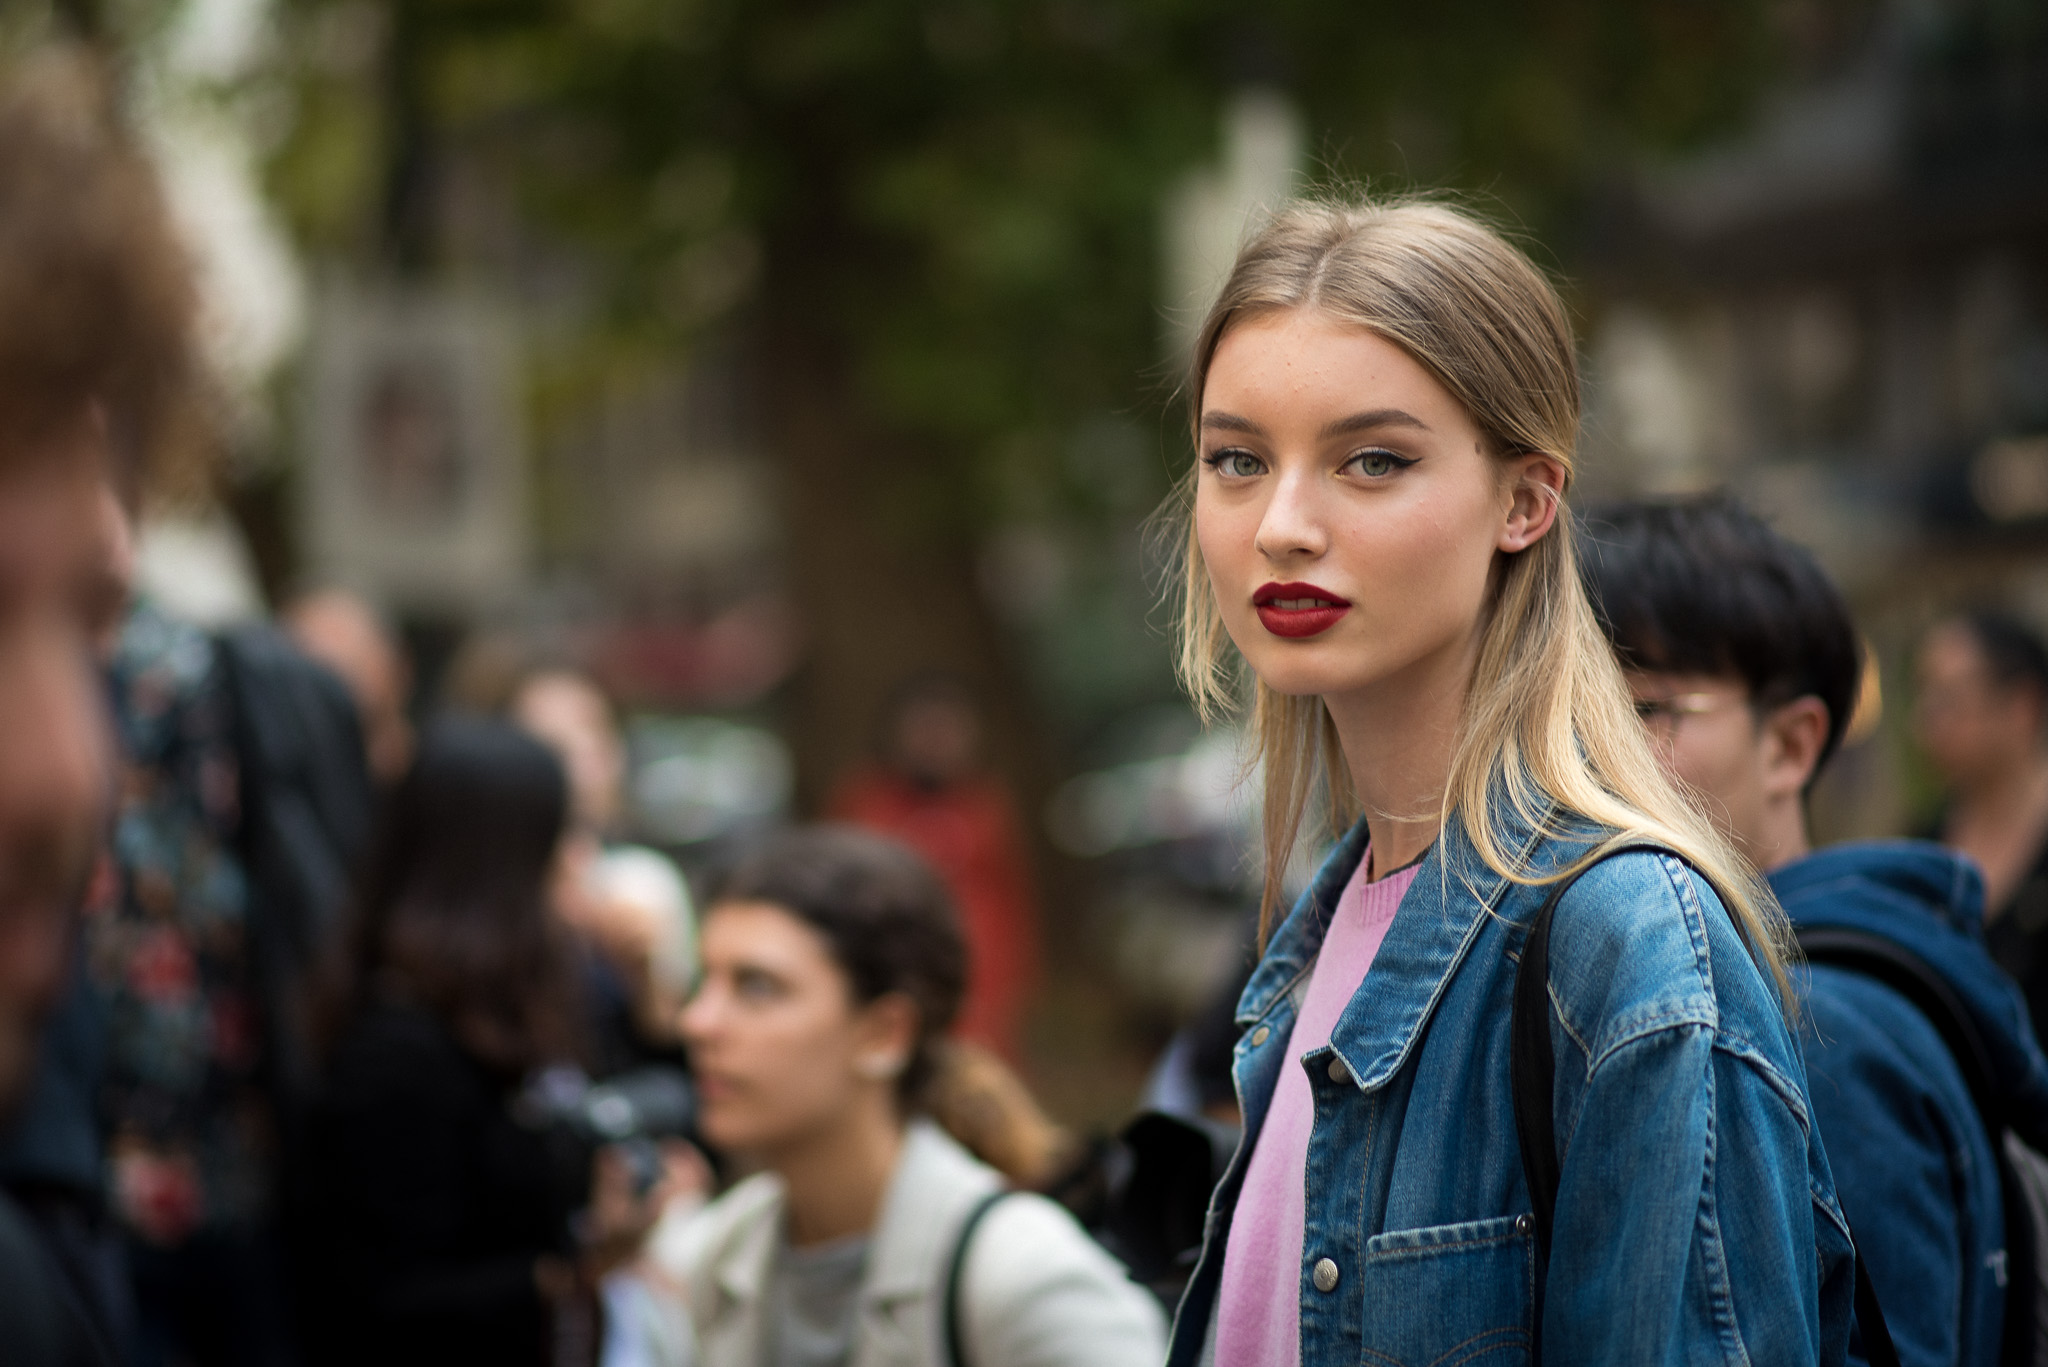 Giulia Maenza Models Off Duty Dolce & Gabbana Milan Fashion Week September 2017 Photography Annika Lagerqvist www.annikasomething.com